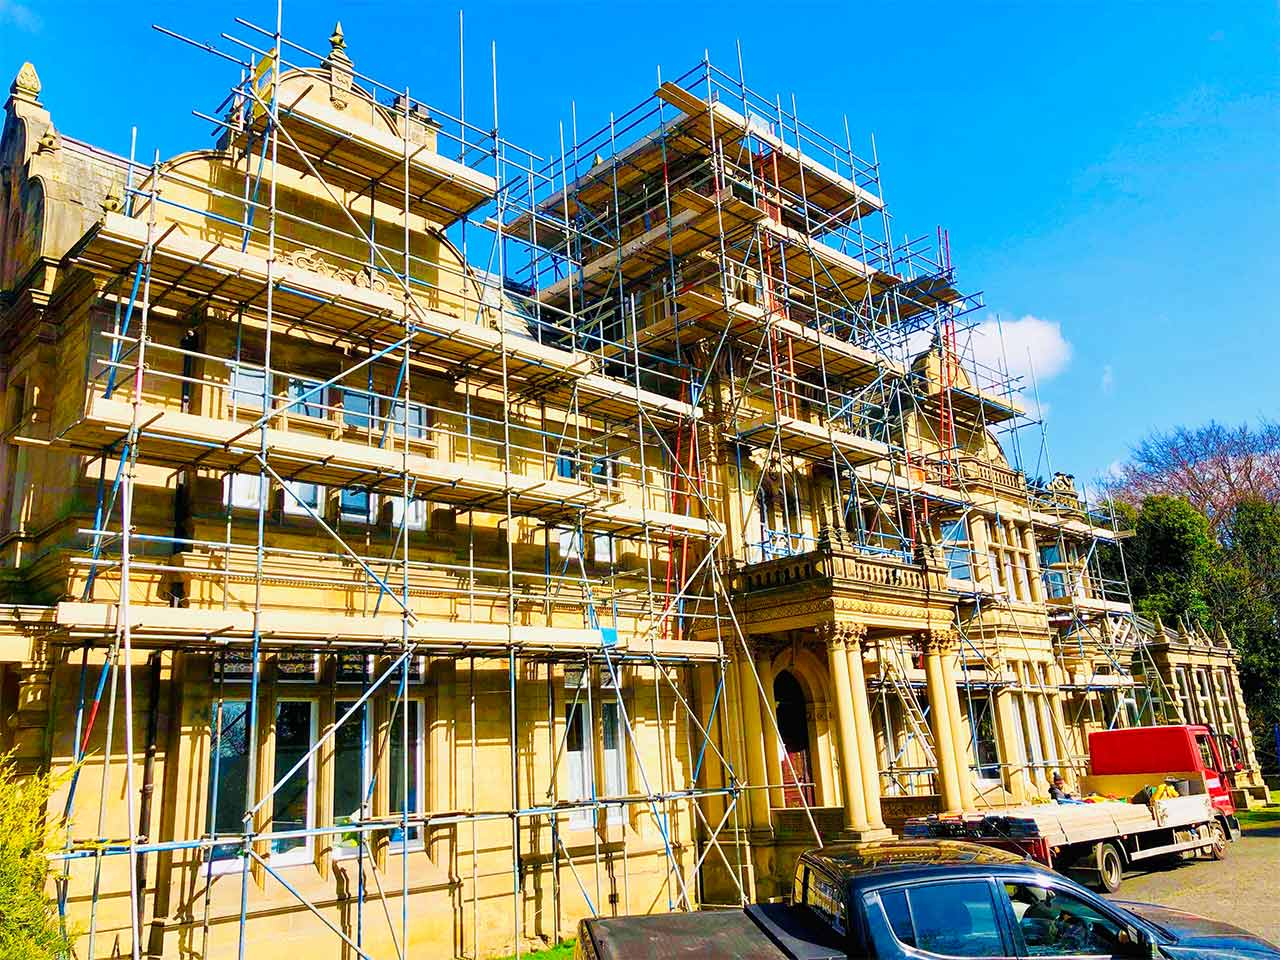 Heritage Old Renovation and Repair SCAFF-CO UK LTD SCAFFOLDING